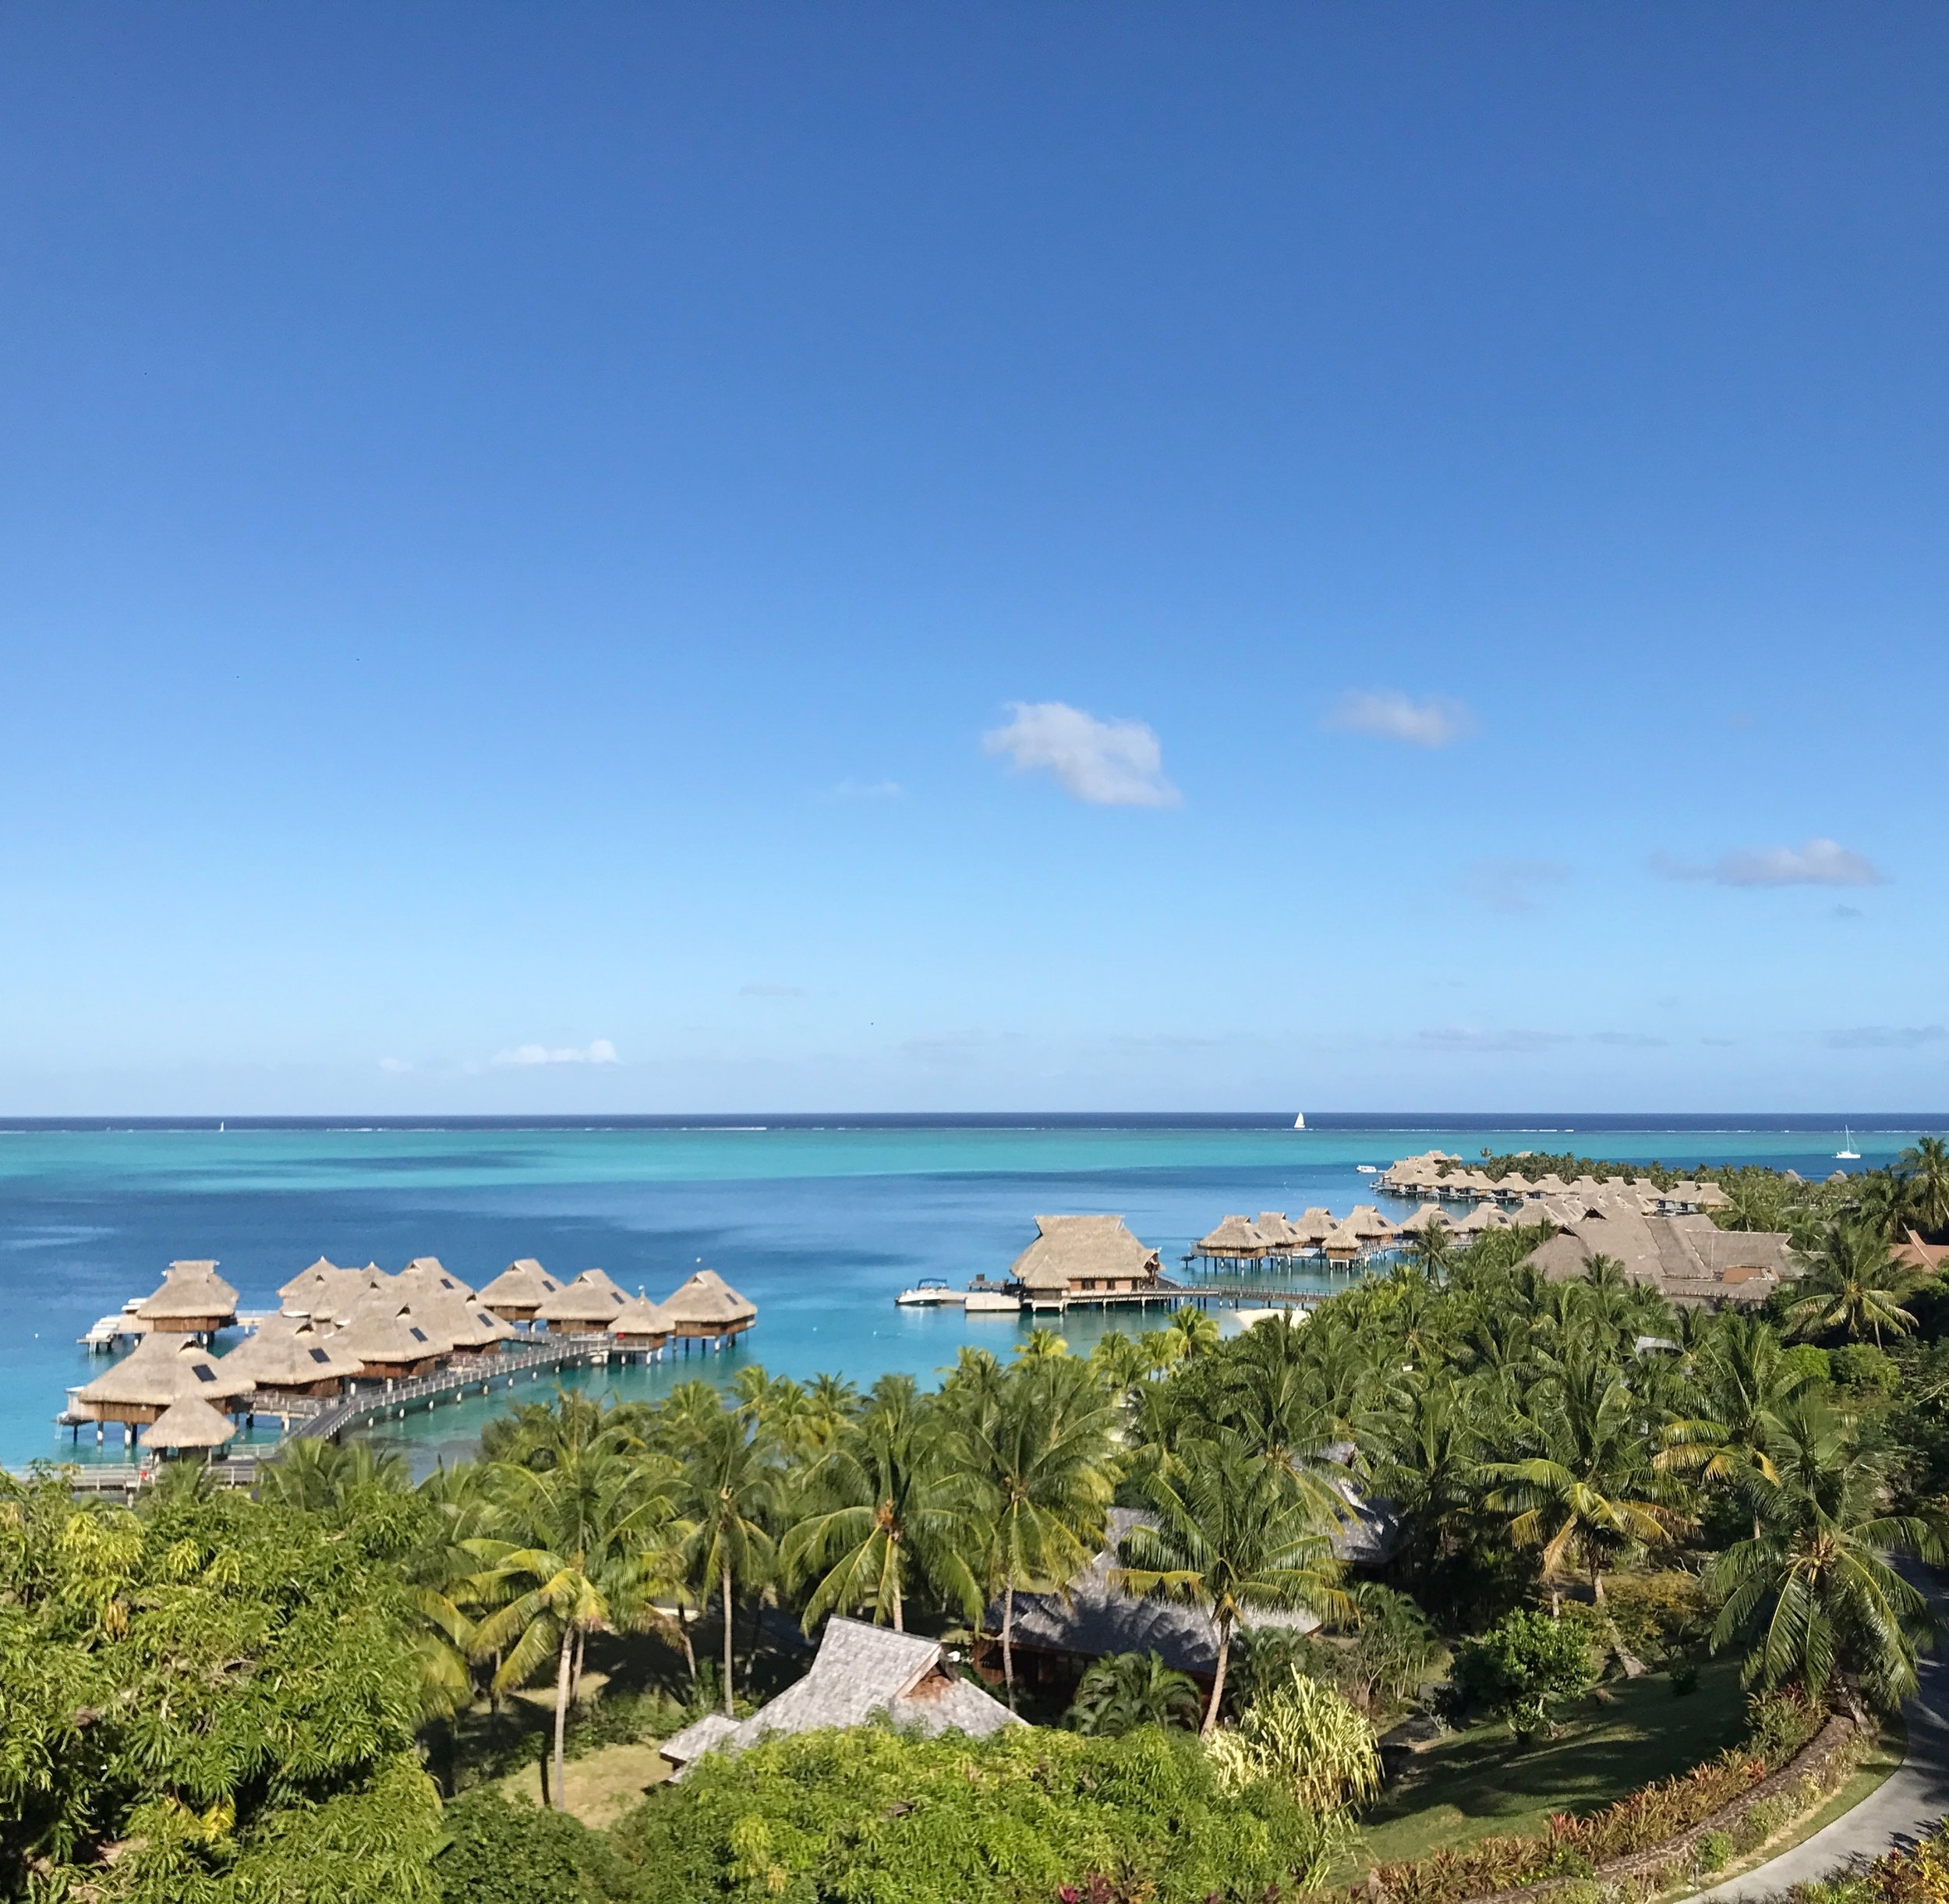 Check out the aerial view of the resort from the SPA